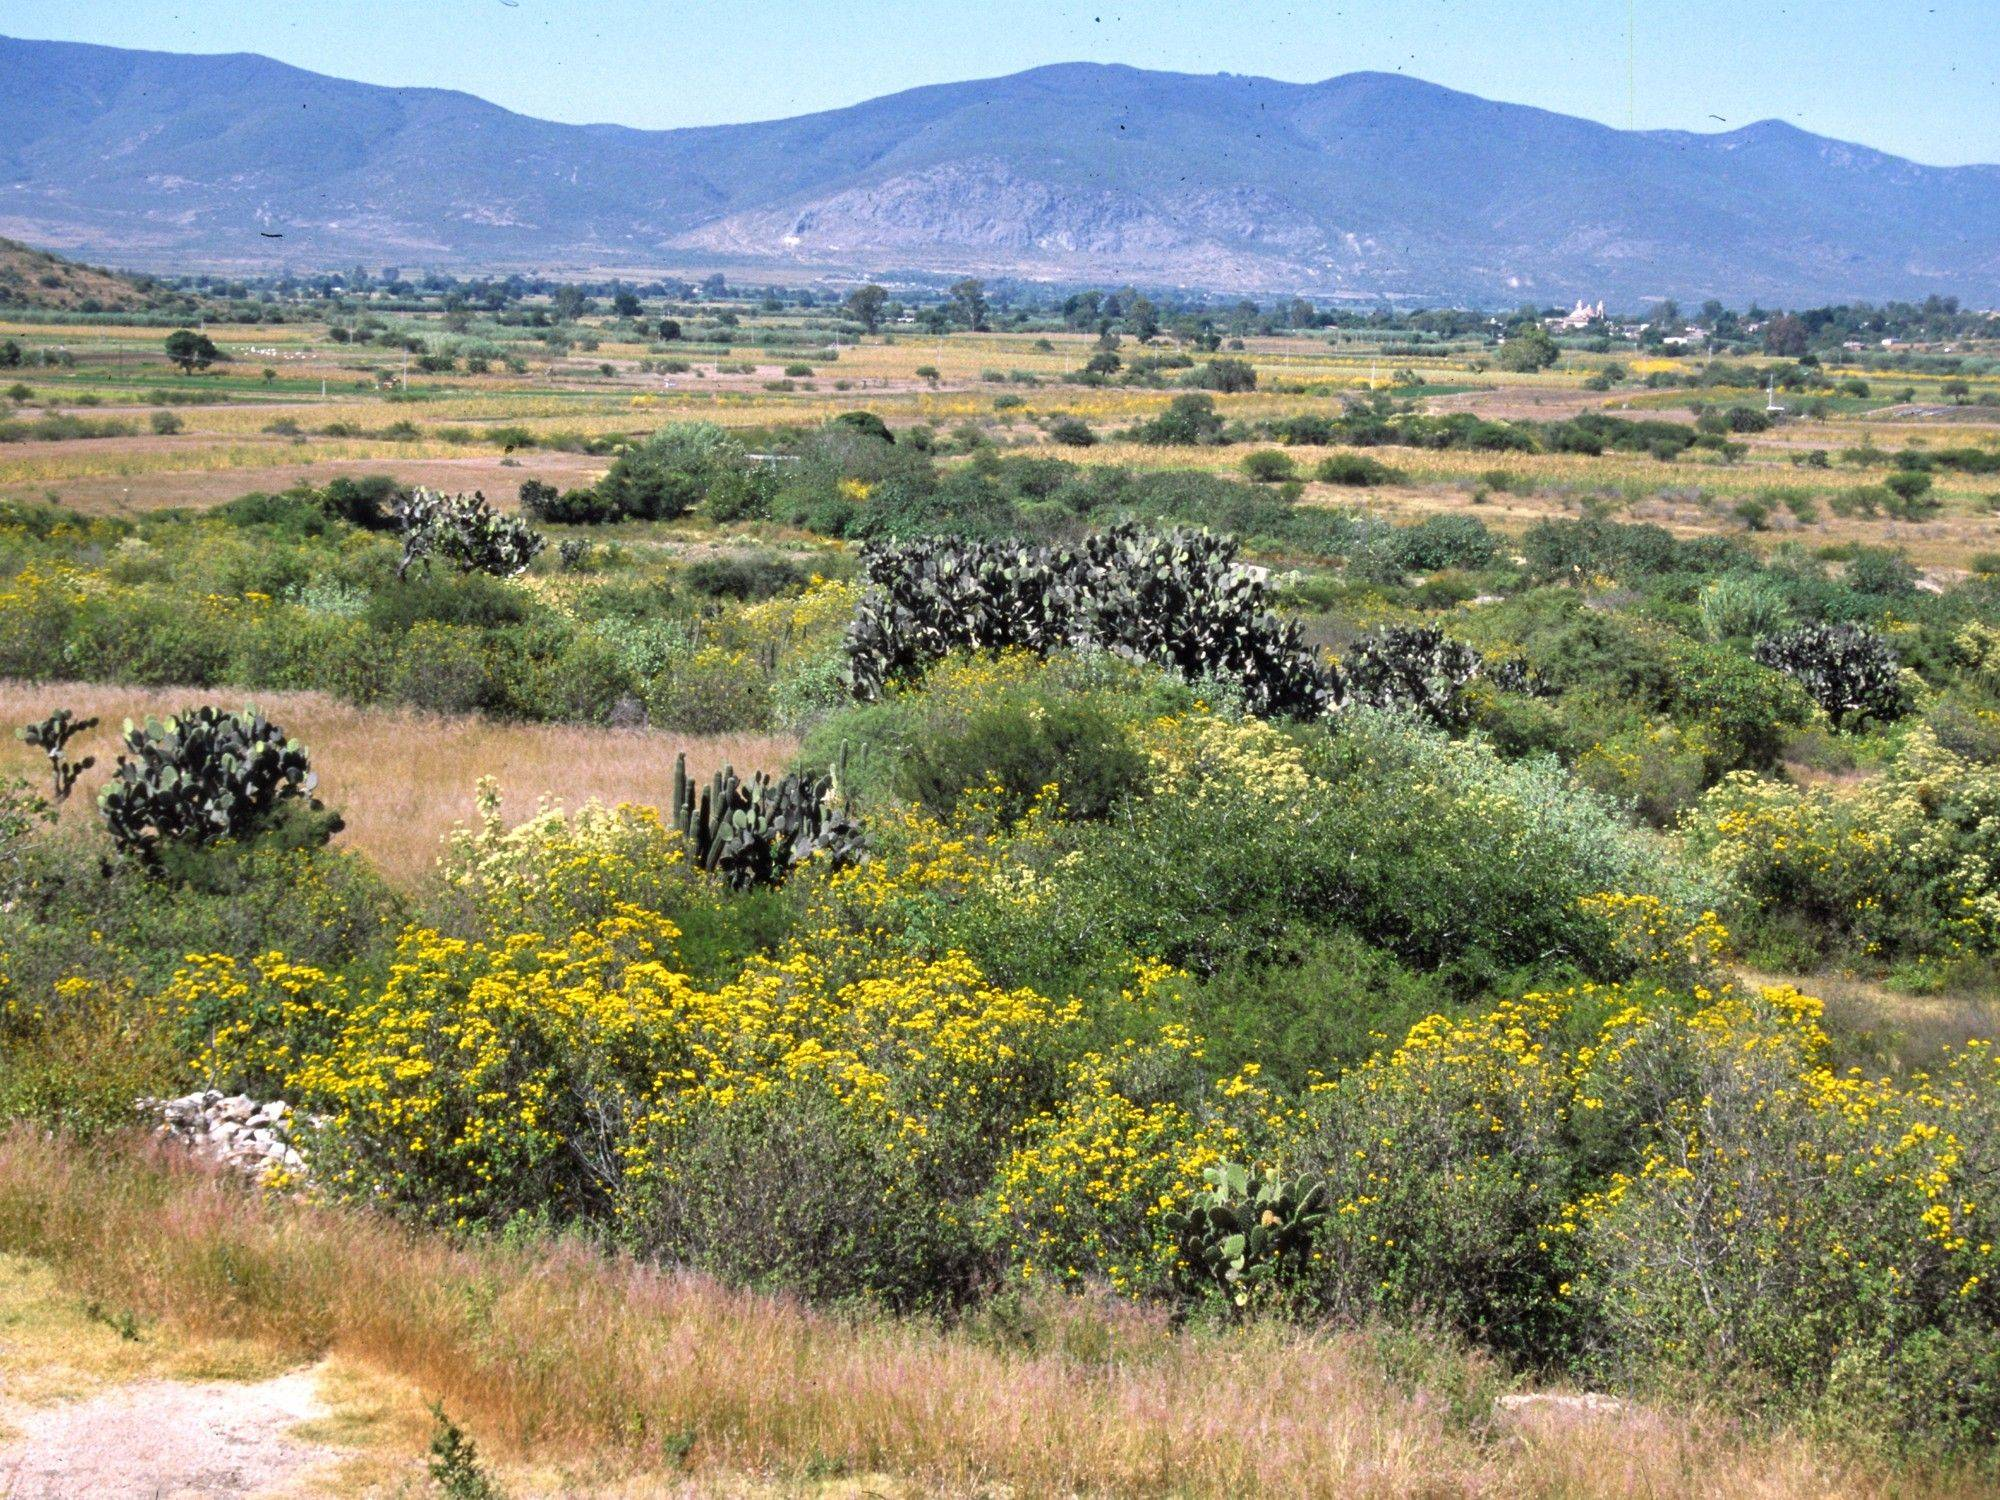 Outside Oaxaca City the shrubby Tagetes lucida can be seen in bloom.